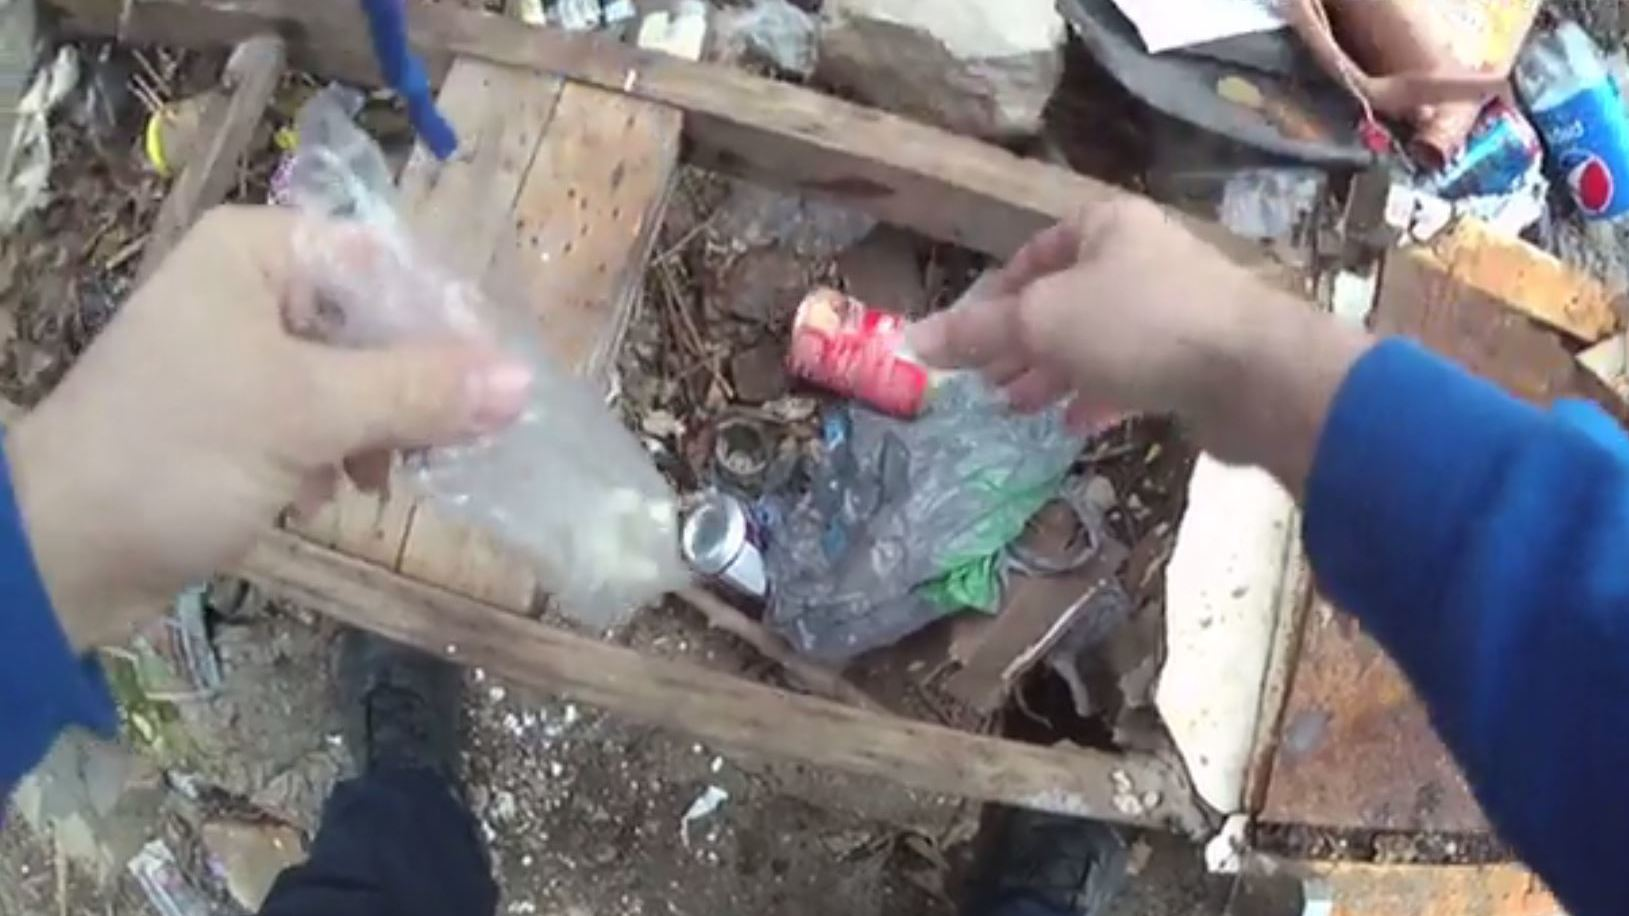 Baltimore Police Caught Planting Drugs In Body-Cam Footage ...